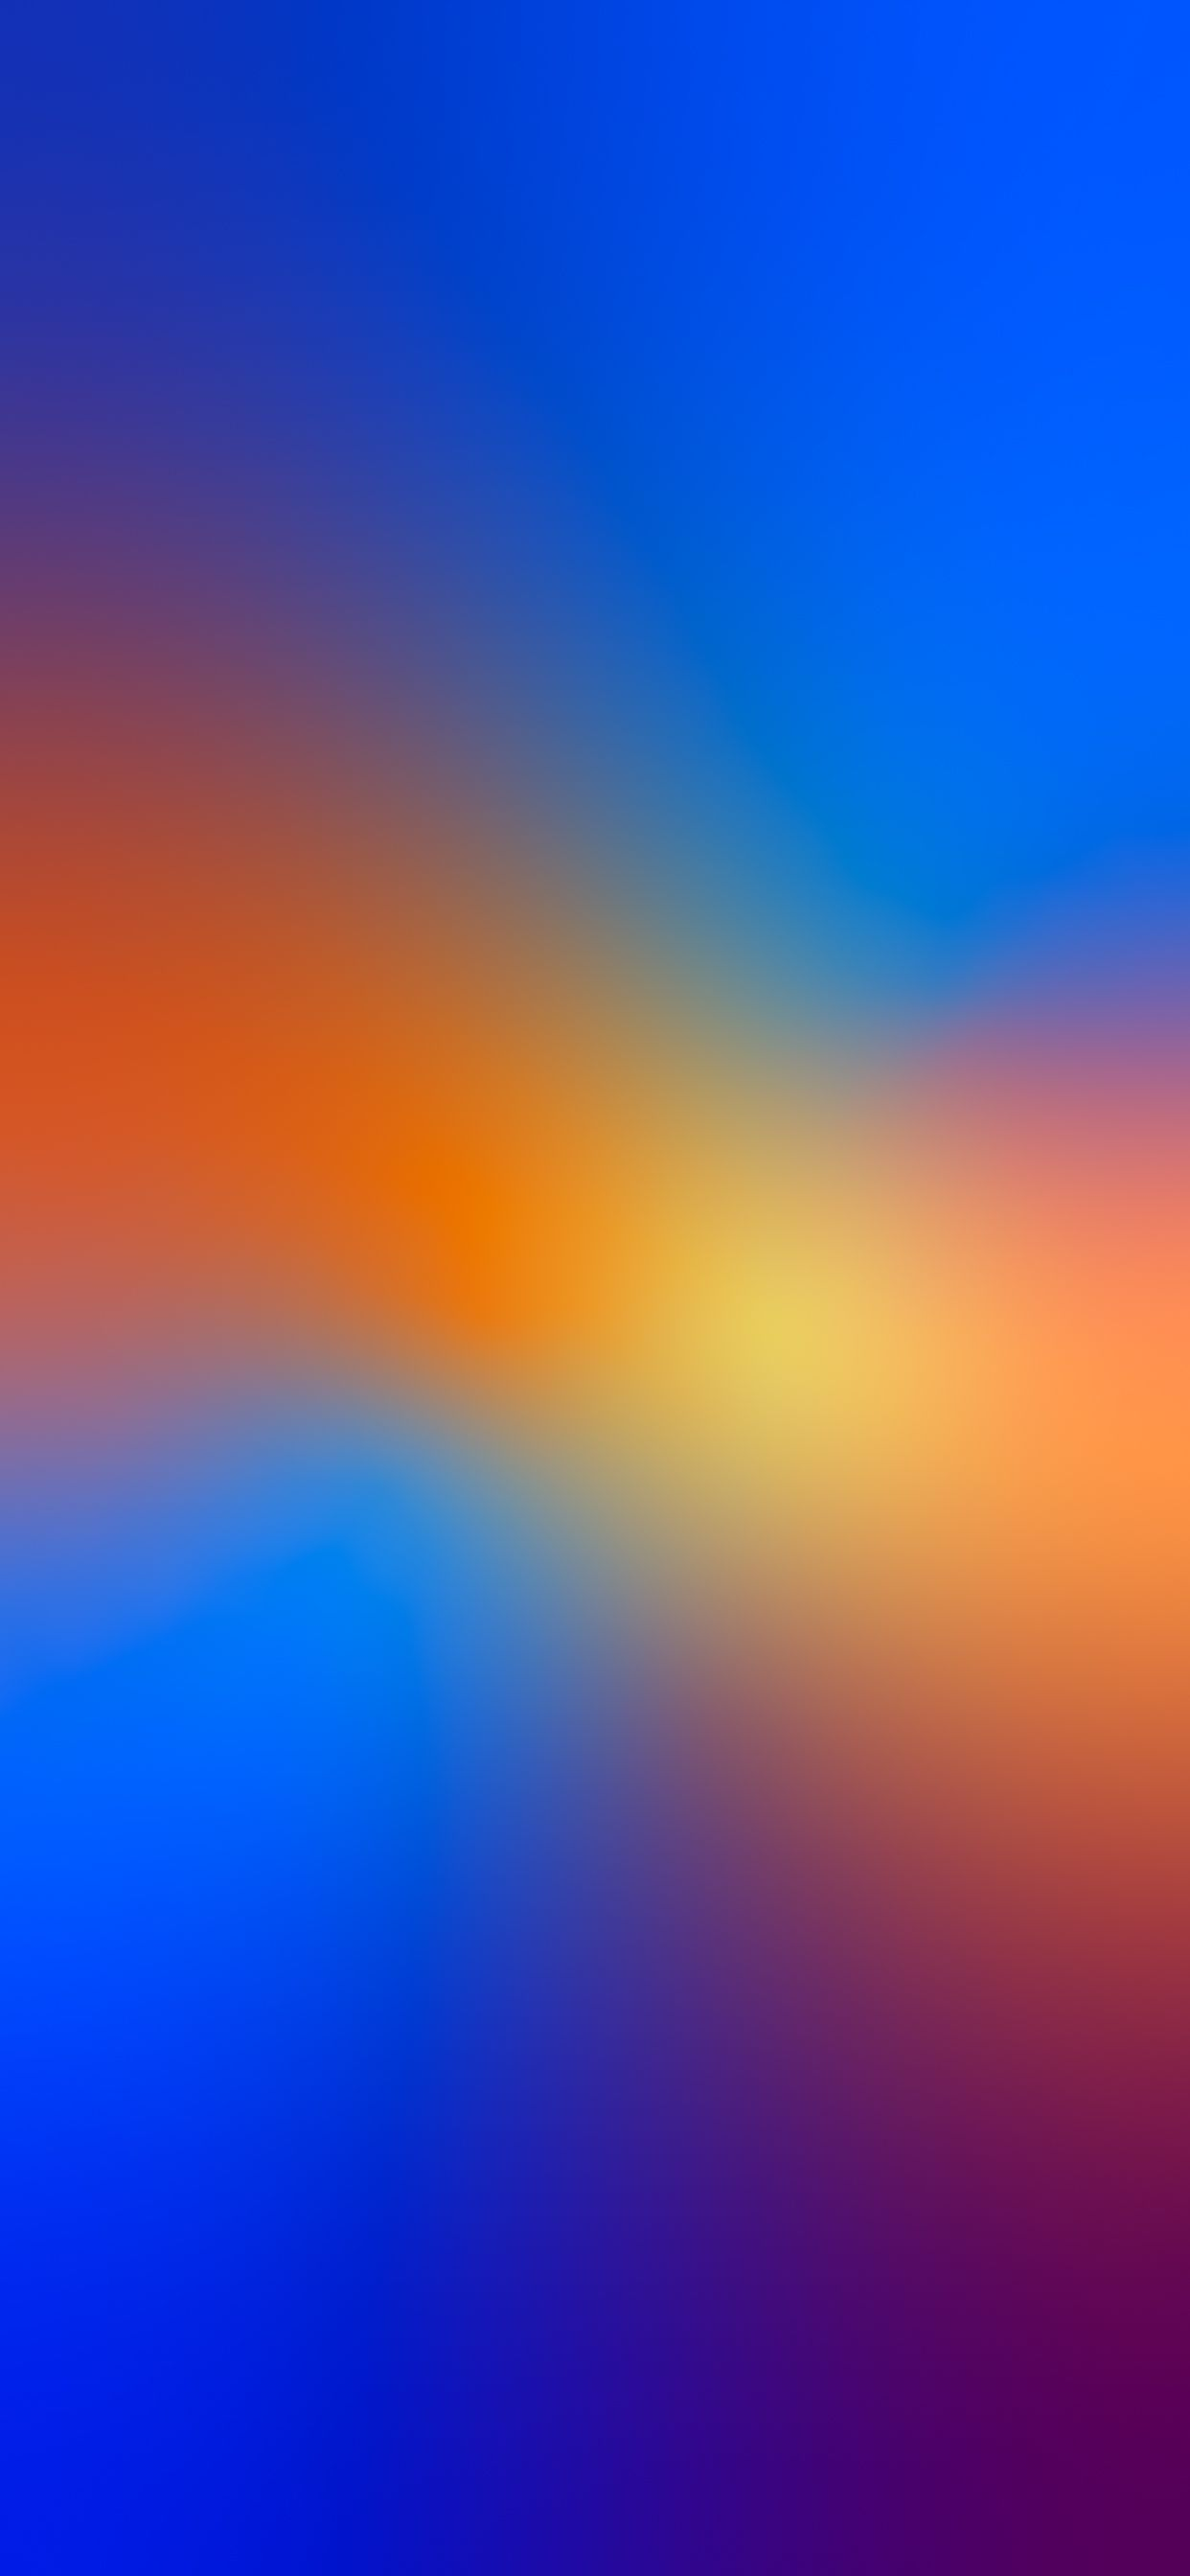 Blue To Orange Gradient For Iphone By Hk3ton On Twitter Oneplus Wallpapers Blue Wallpaper Iphone Apple Iphone Wallpaper Hd